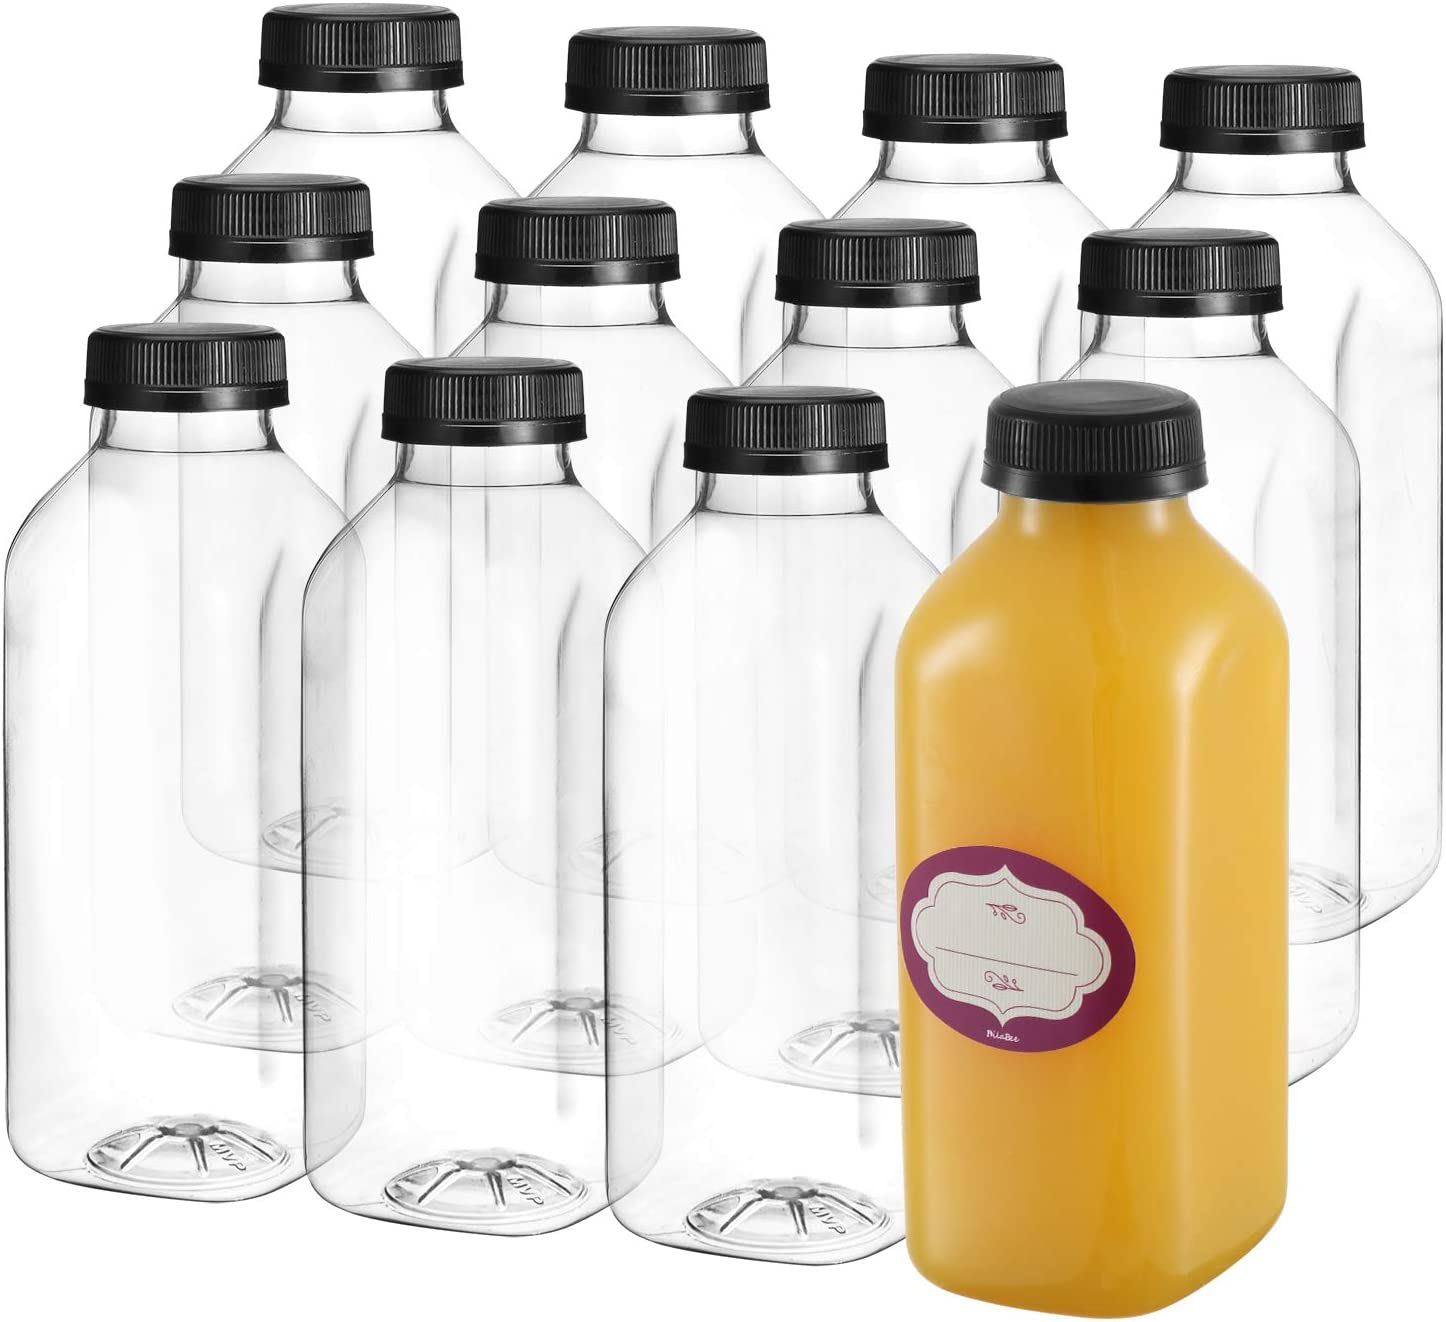 16 Oz Empty Plastic Juice Bottles with Lids – 12 Pack Large Square Drink Containers - Great for Storing Homemade Juices, Water, Smoothies, Tea and other beverages - Food Grade BPA Free